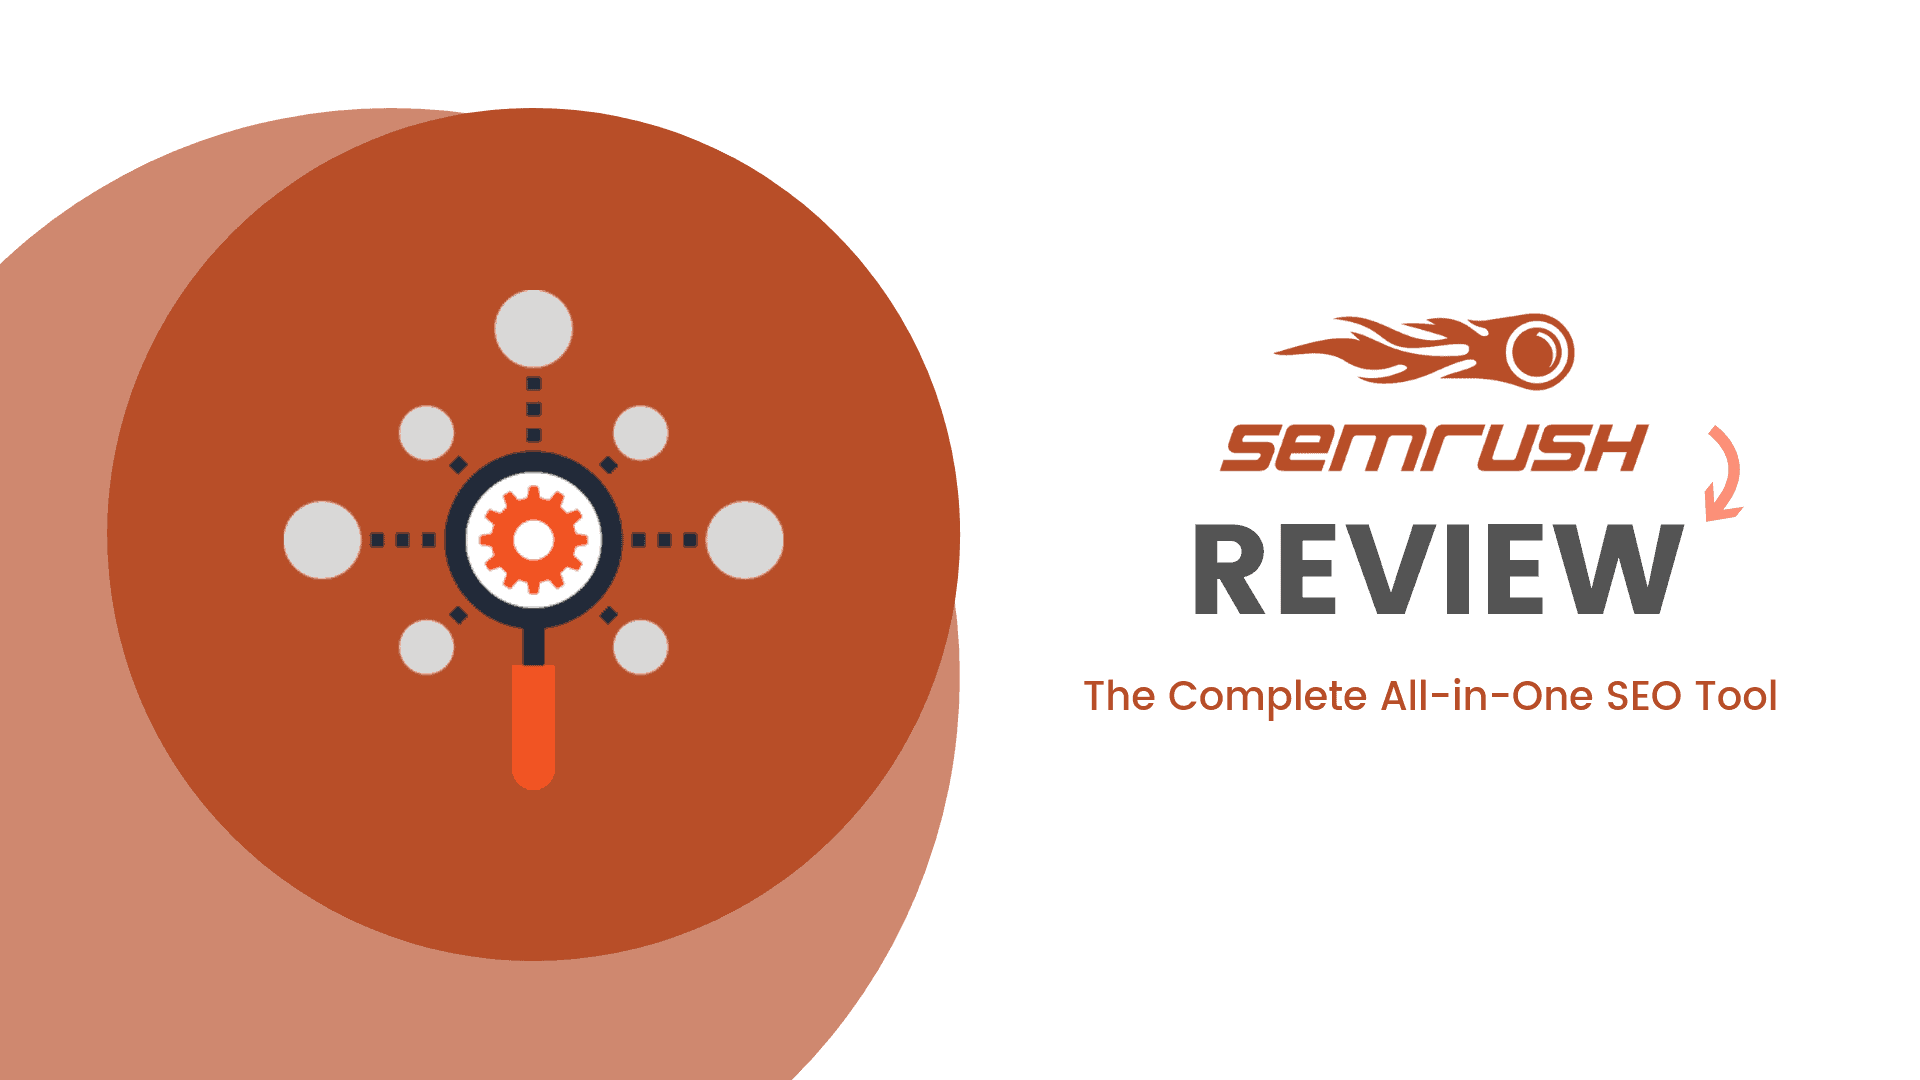 Buy Seo Software Semrush Amazon Offer